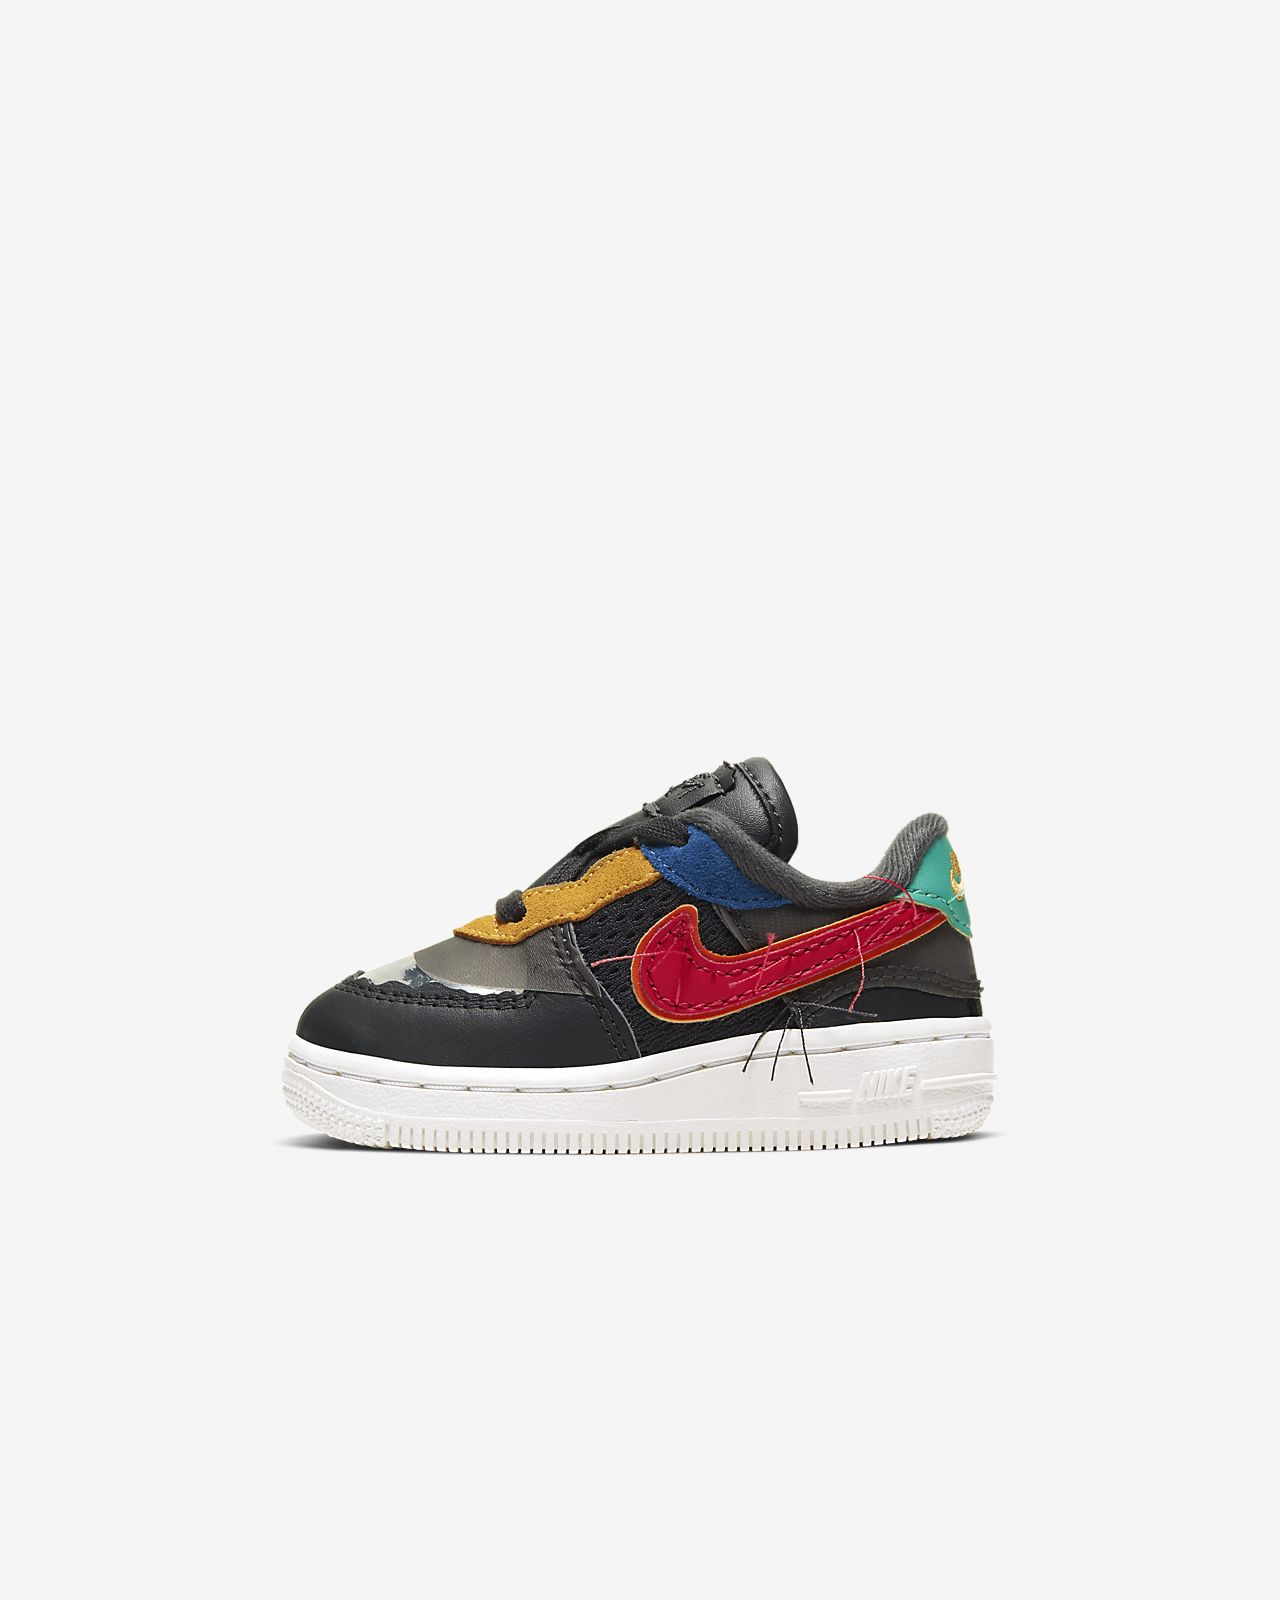 Nike Force 1 Black History Month Baby/Toddler Shoe